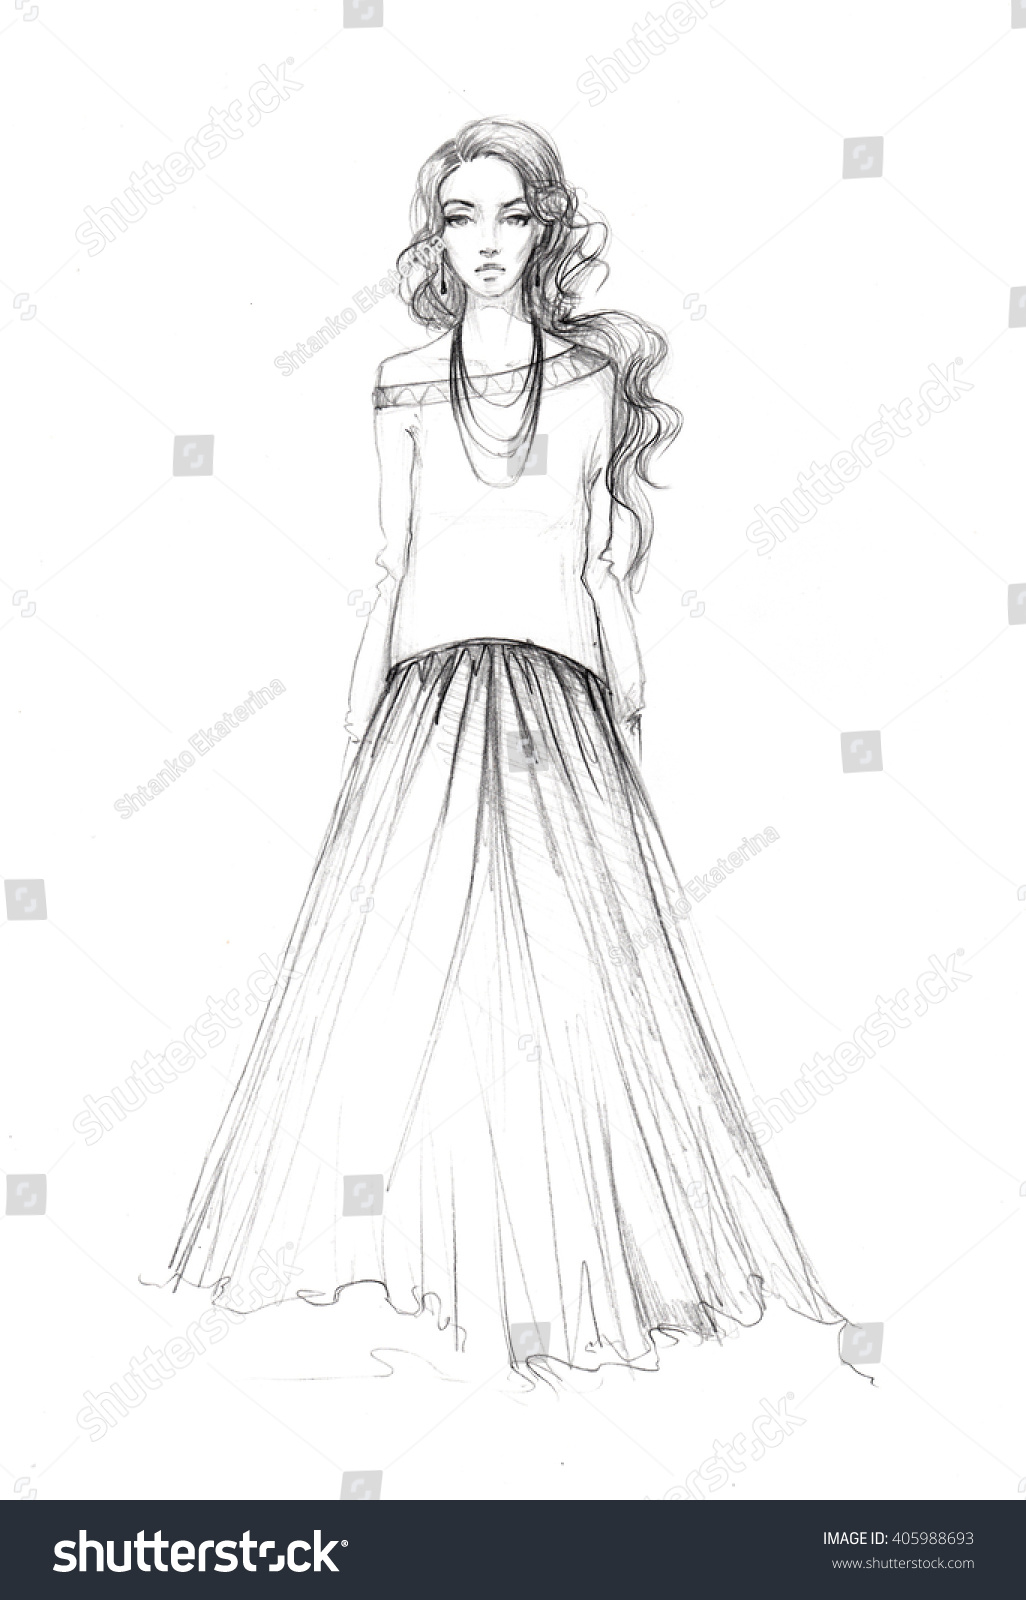 Easy Fashion Sketch Stock Illustration 405988693